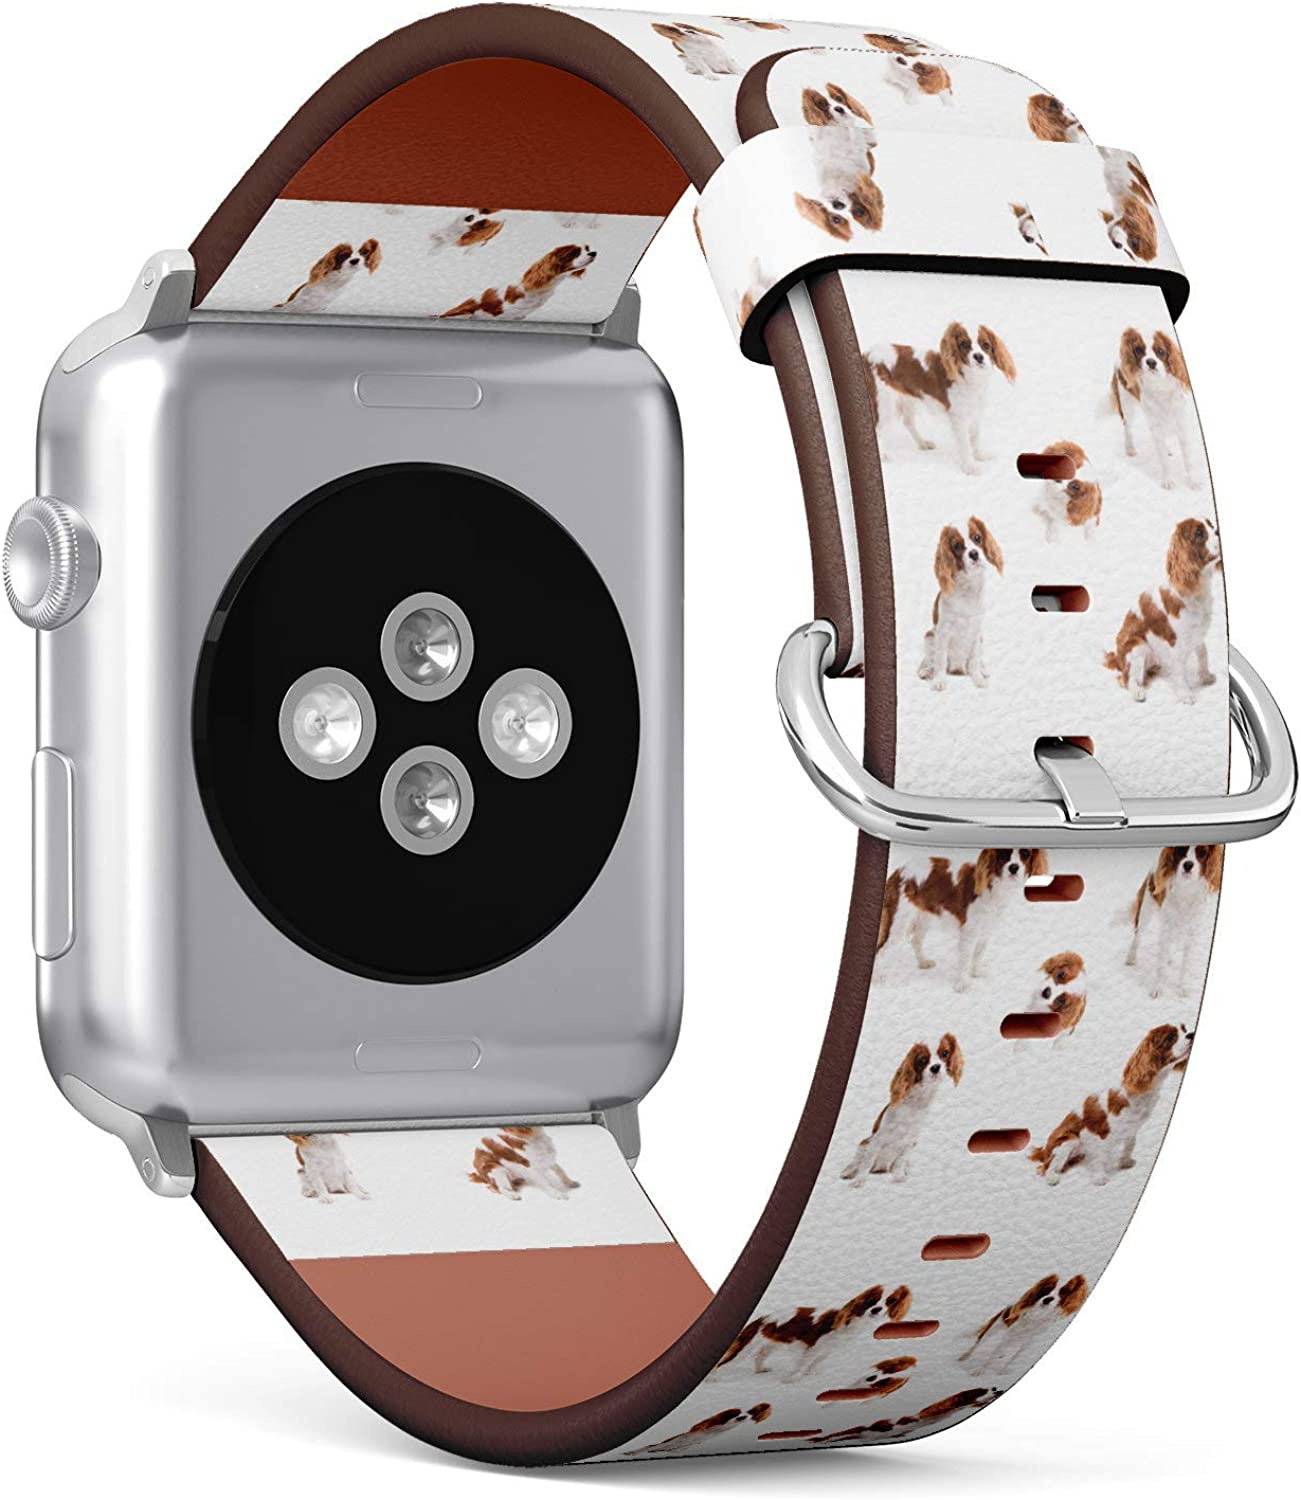 ( Cavalier king charles spaniel dog )Patterned Leather Wristband Strap for Apple Watch Series 4/3/2/1 gen ,Replacement for iWatch 38mm / 40mm bands